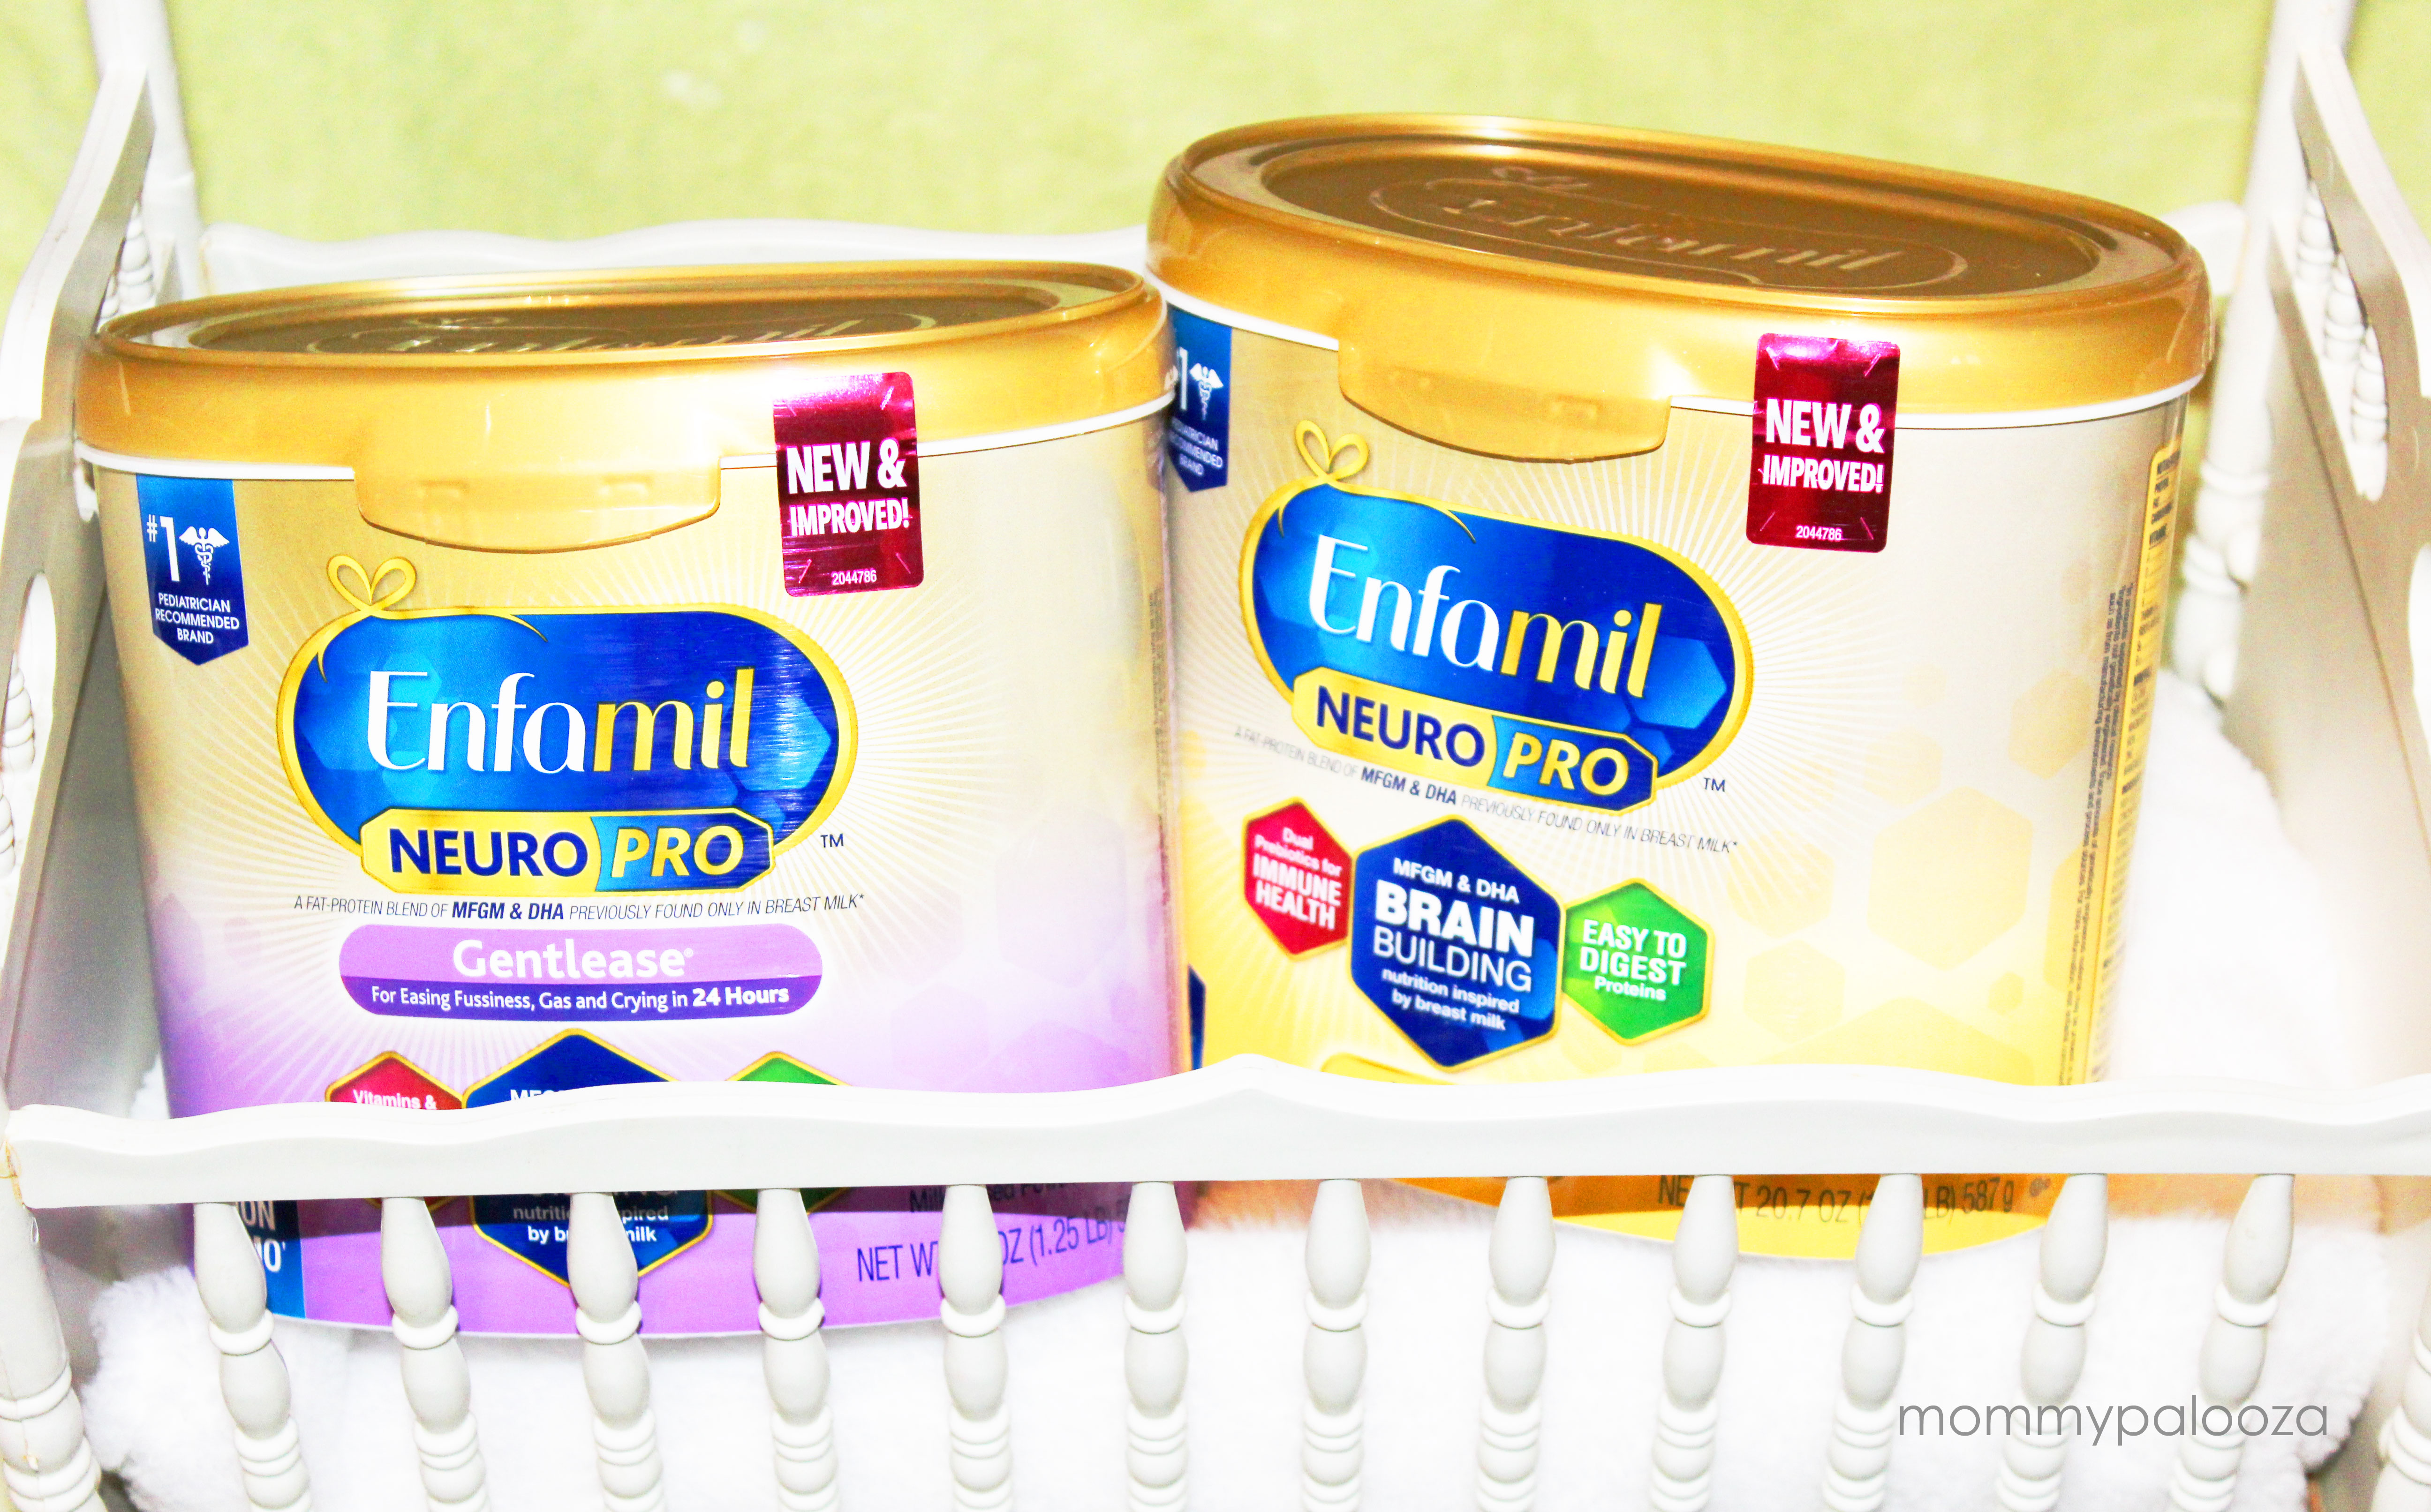 Enfamil NeuroPro in containers inside baby crib